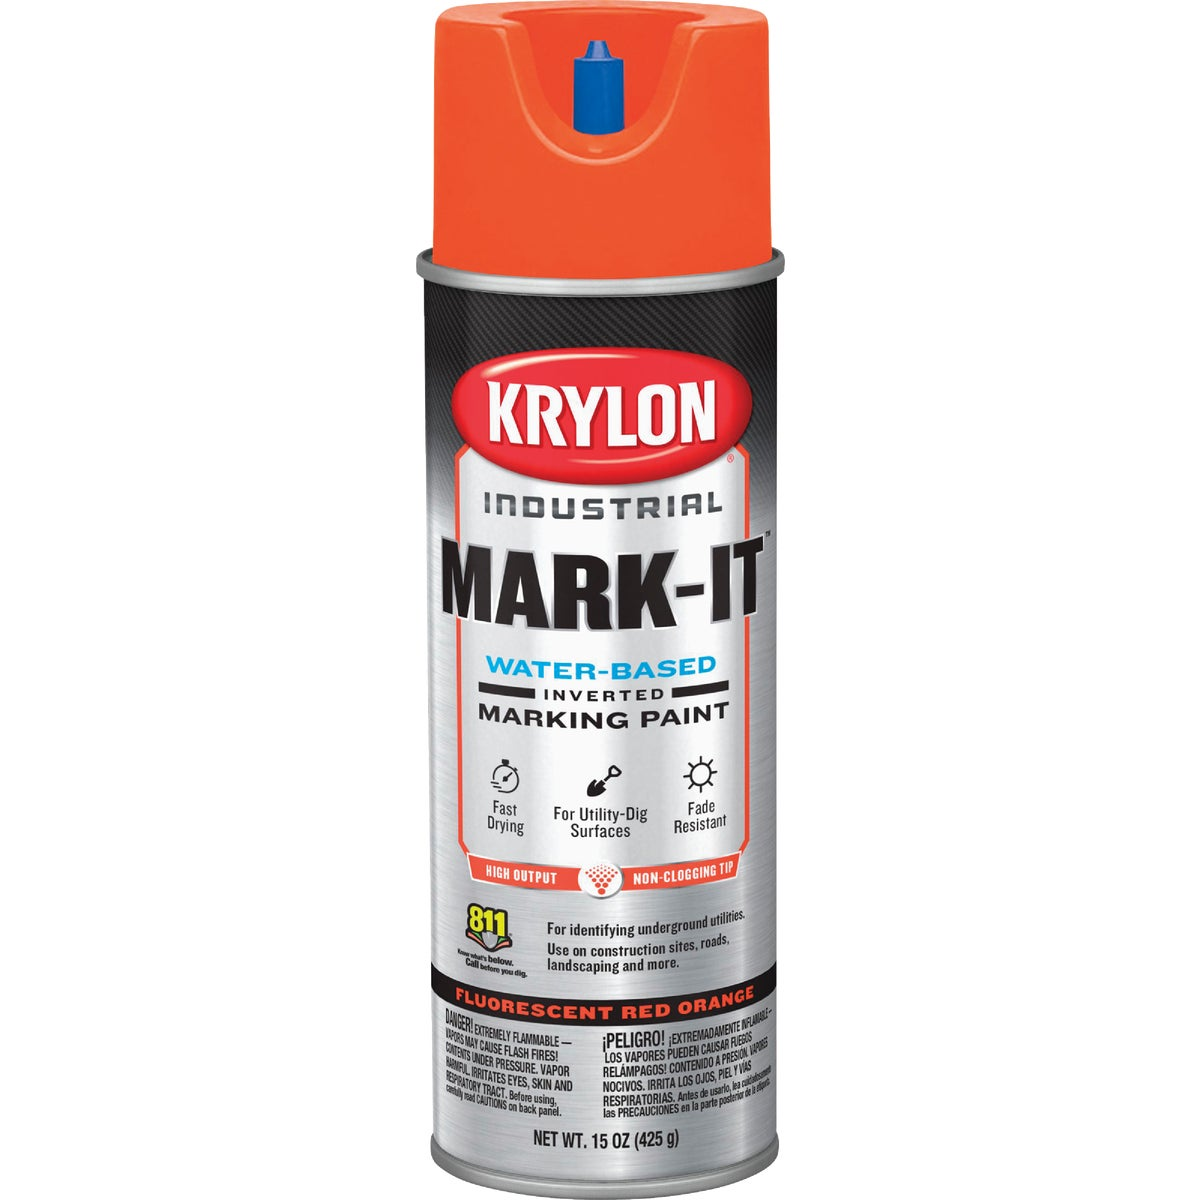 FL RD/ORNG MARKING PAINT - 7321 by Krylon/consumer Div